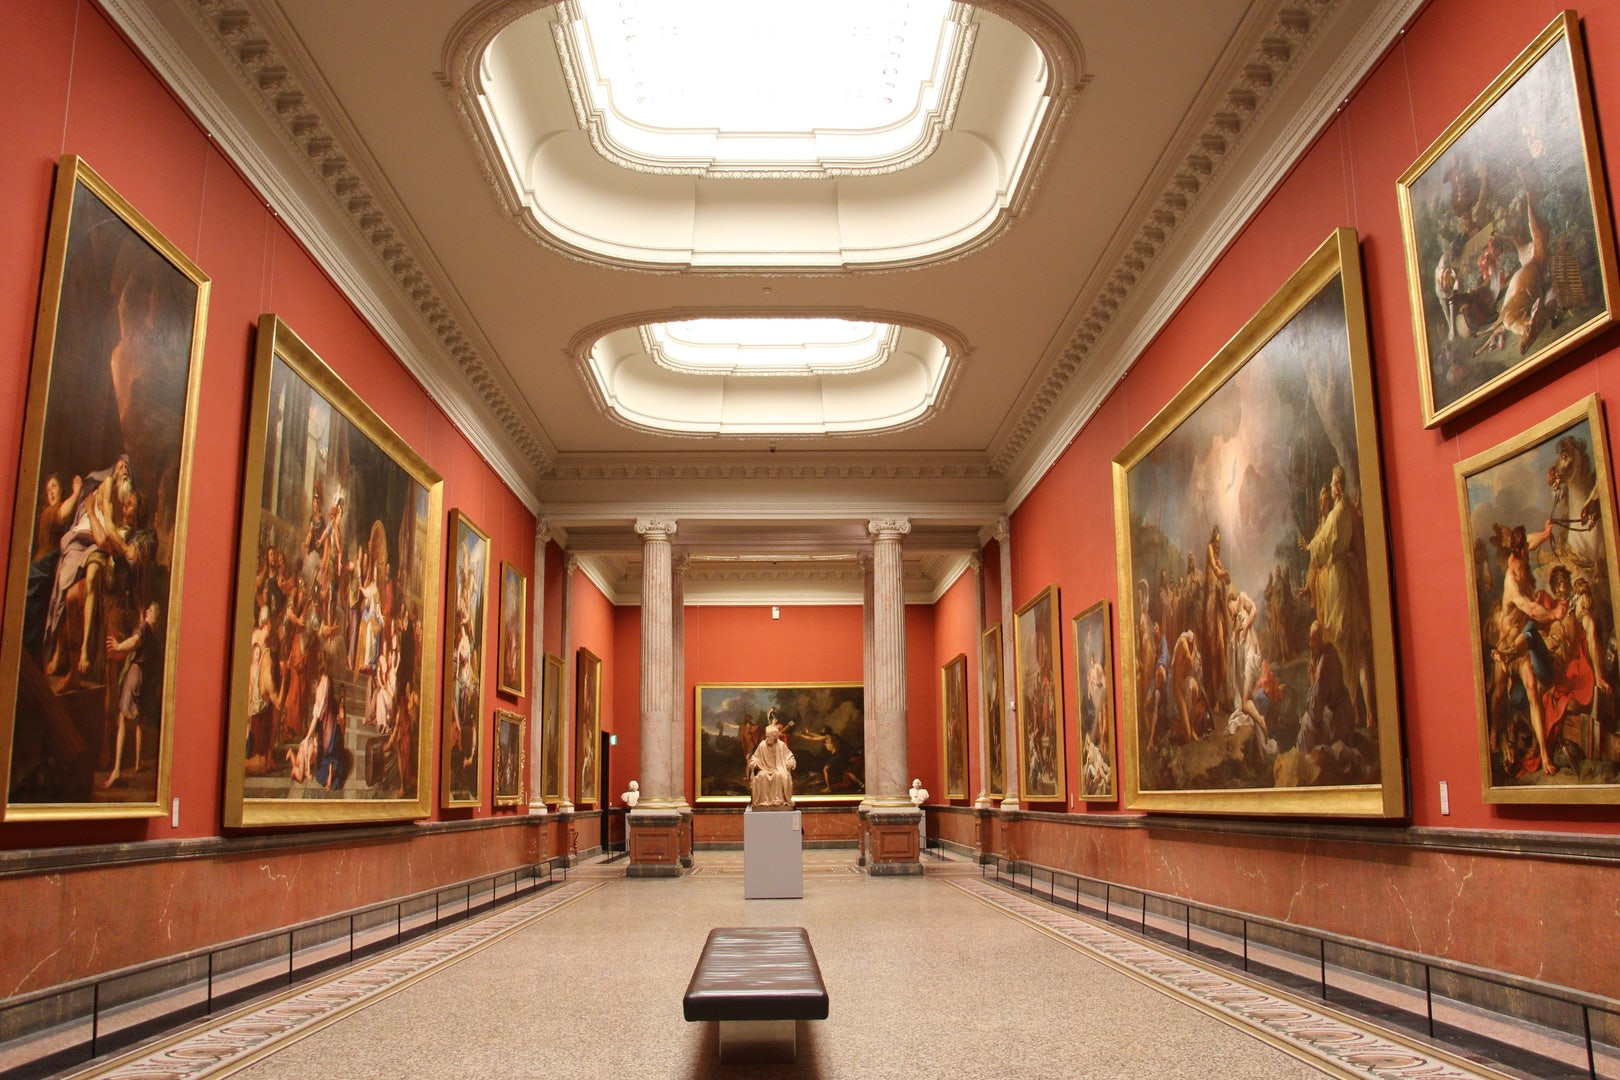 interior of the Musée de Fabre, paintings hanging at an orange pink wall